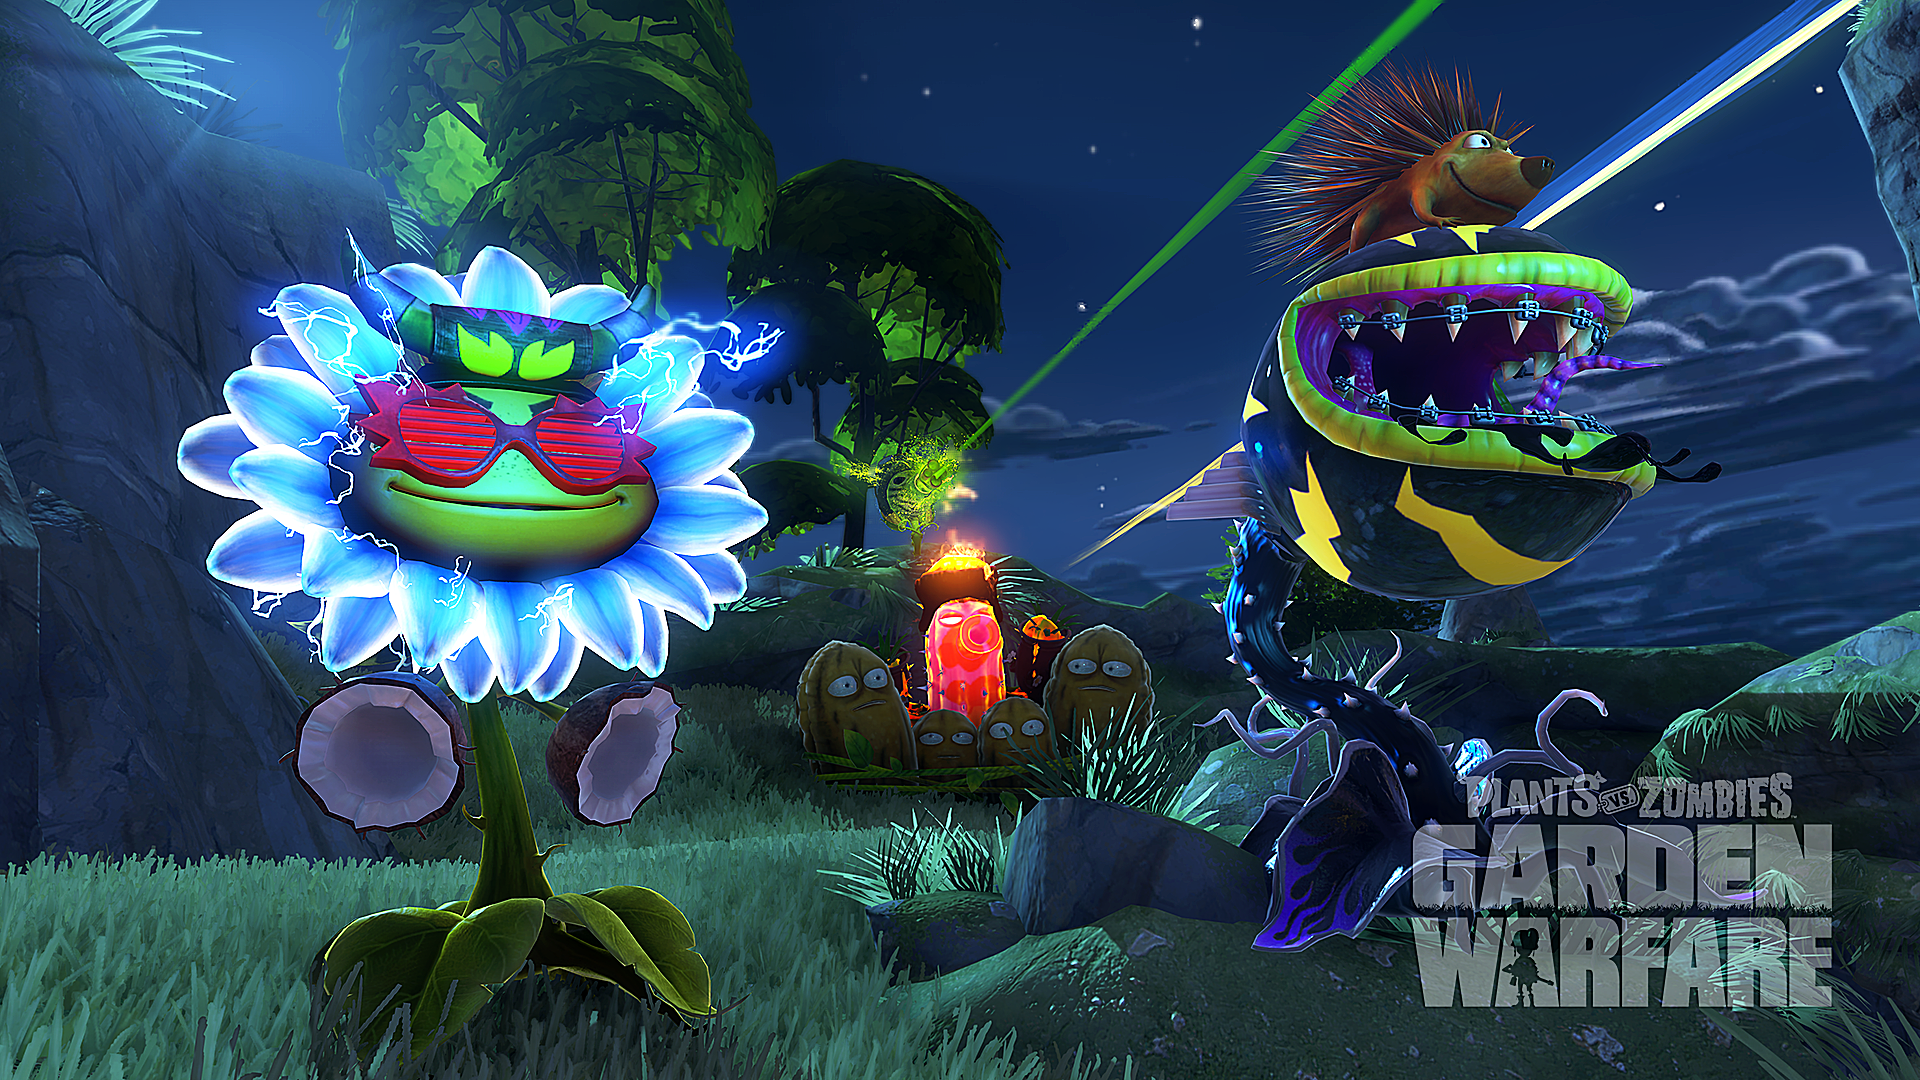 Plants vs zombies garden warfare tips and tricks - Plants vs zombies garden warfare 2 secrets ...